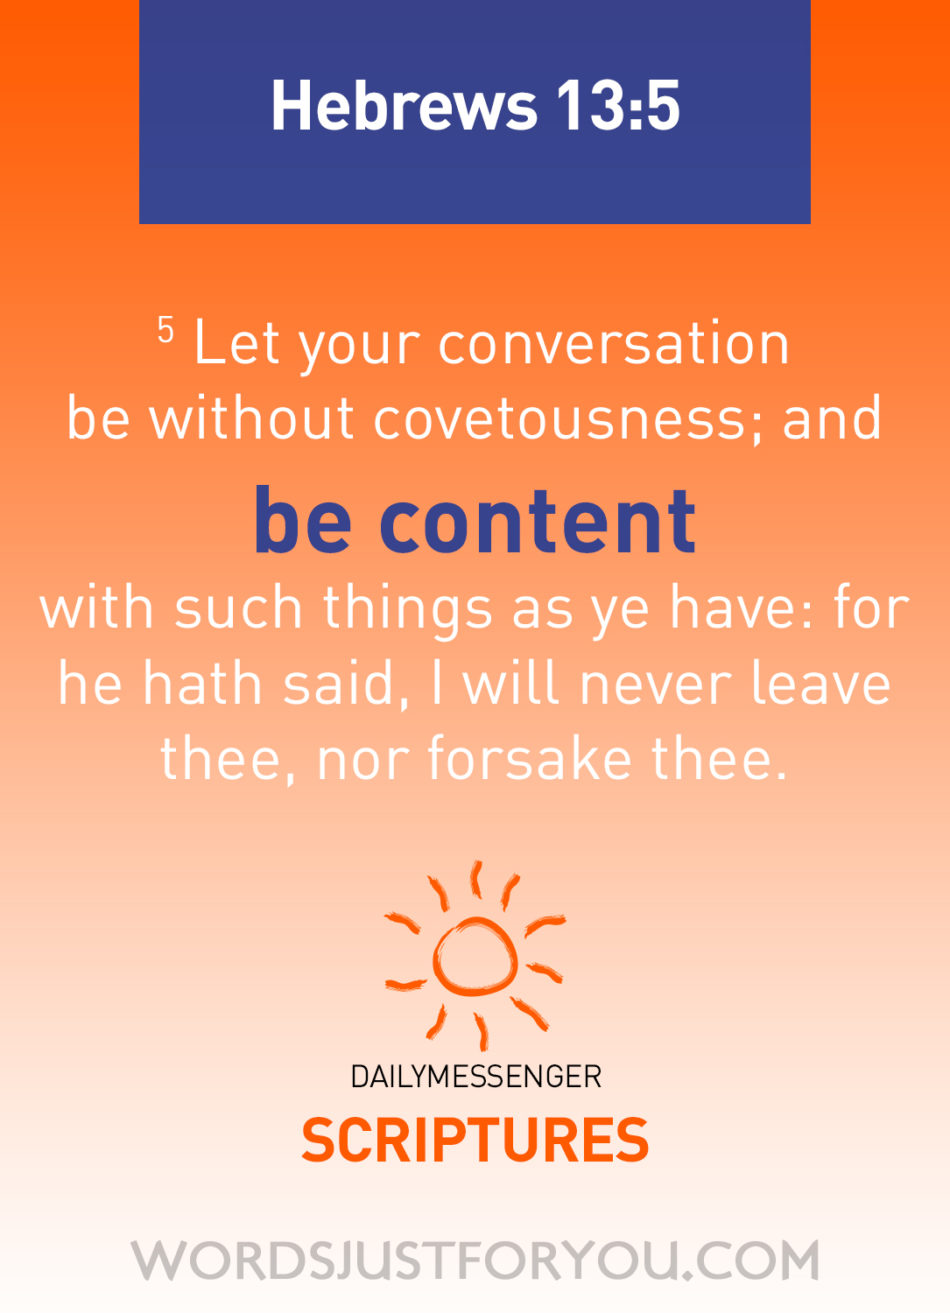 Daily-Messenger_SCRIPTURES